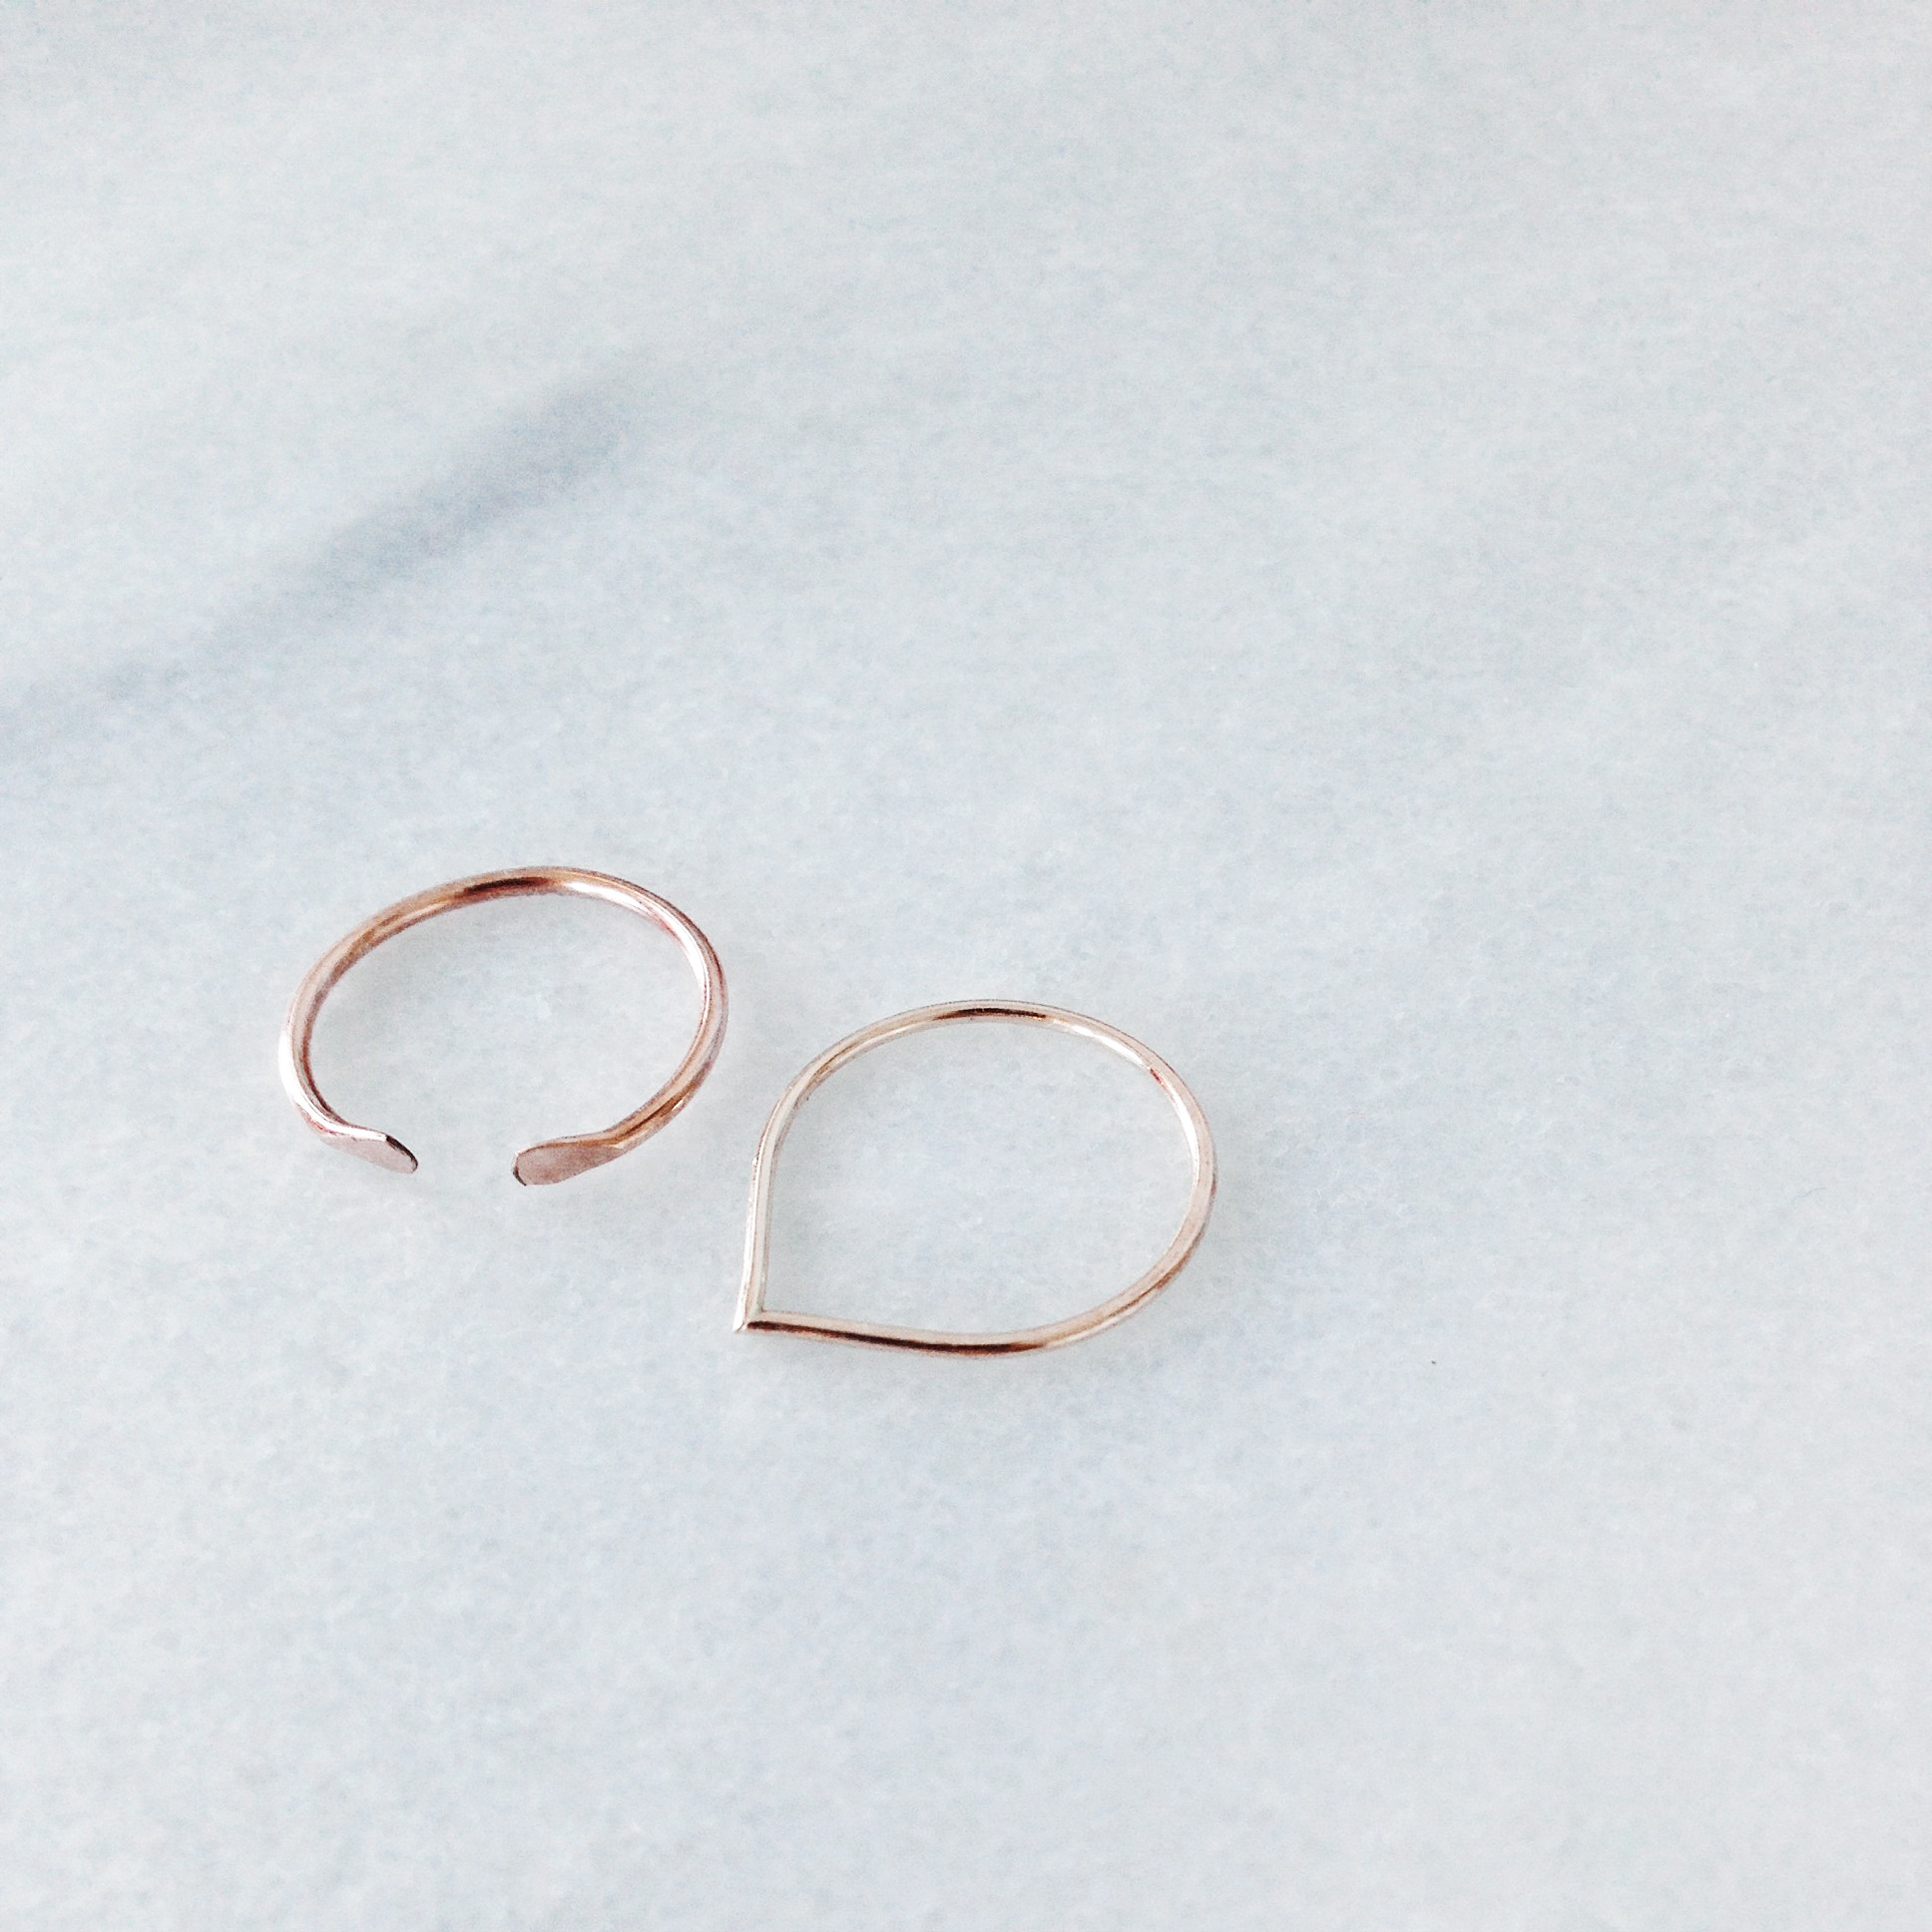 StackMinimalRings_KindofLuxeBlog